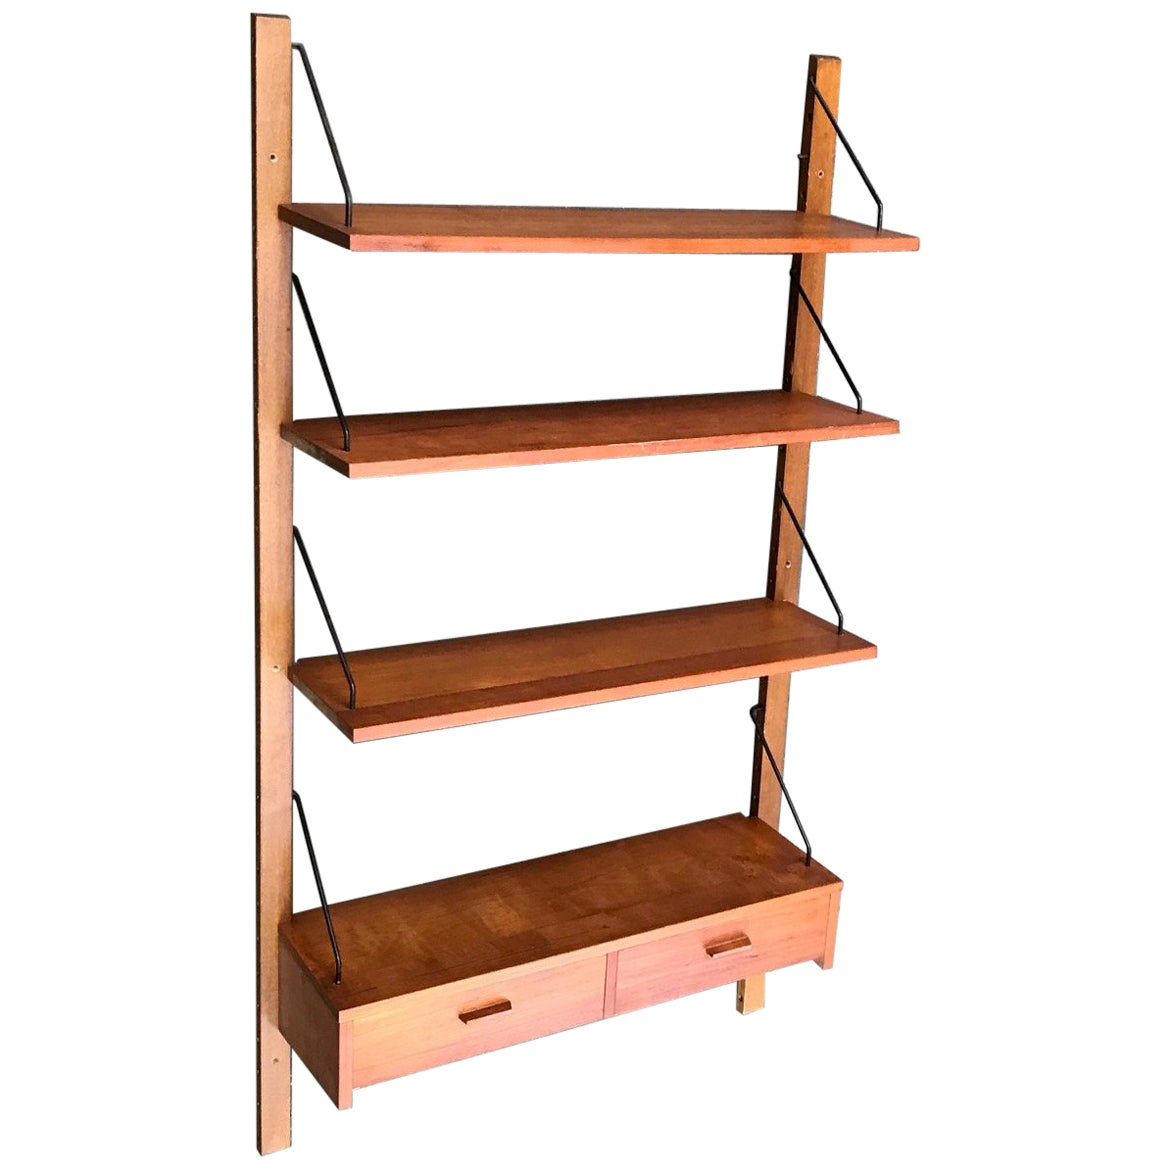 Danish Midcentury Floating Teak Wall Unit from PS System, 1960s